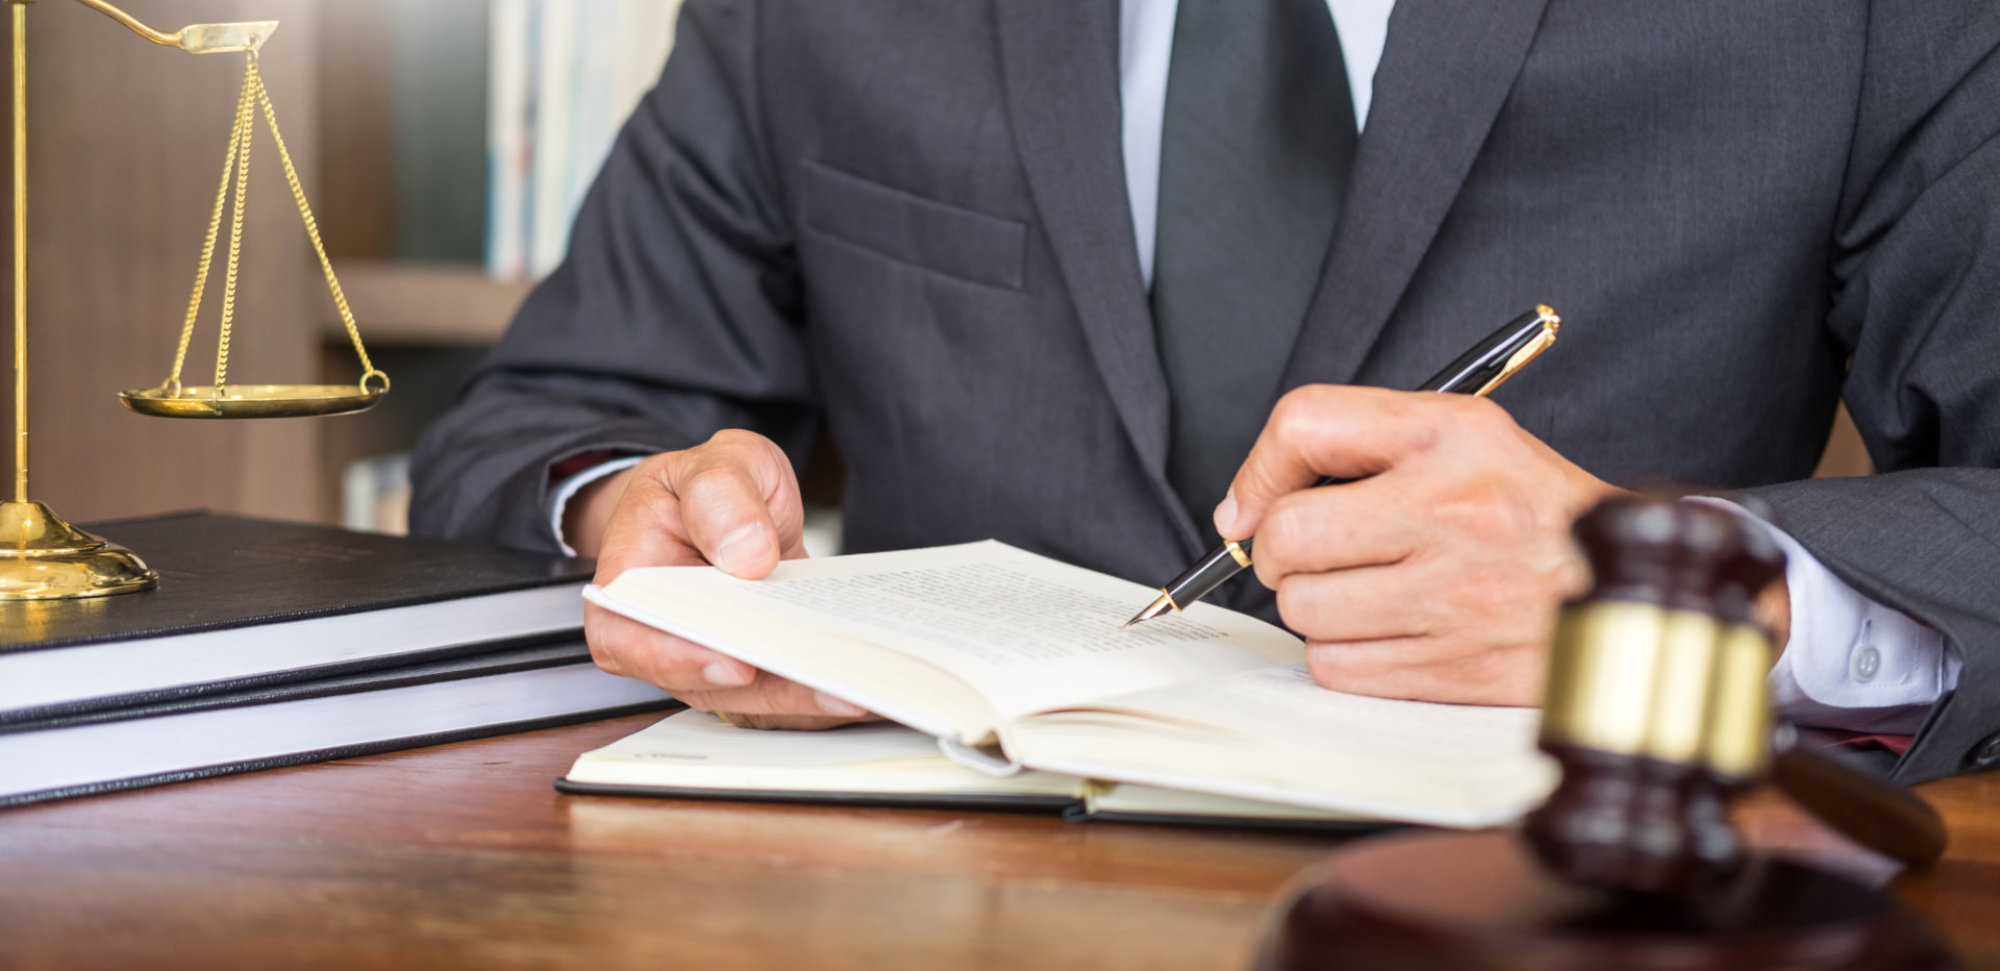 Attorney writing on a document